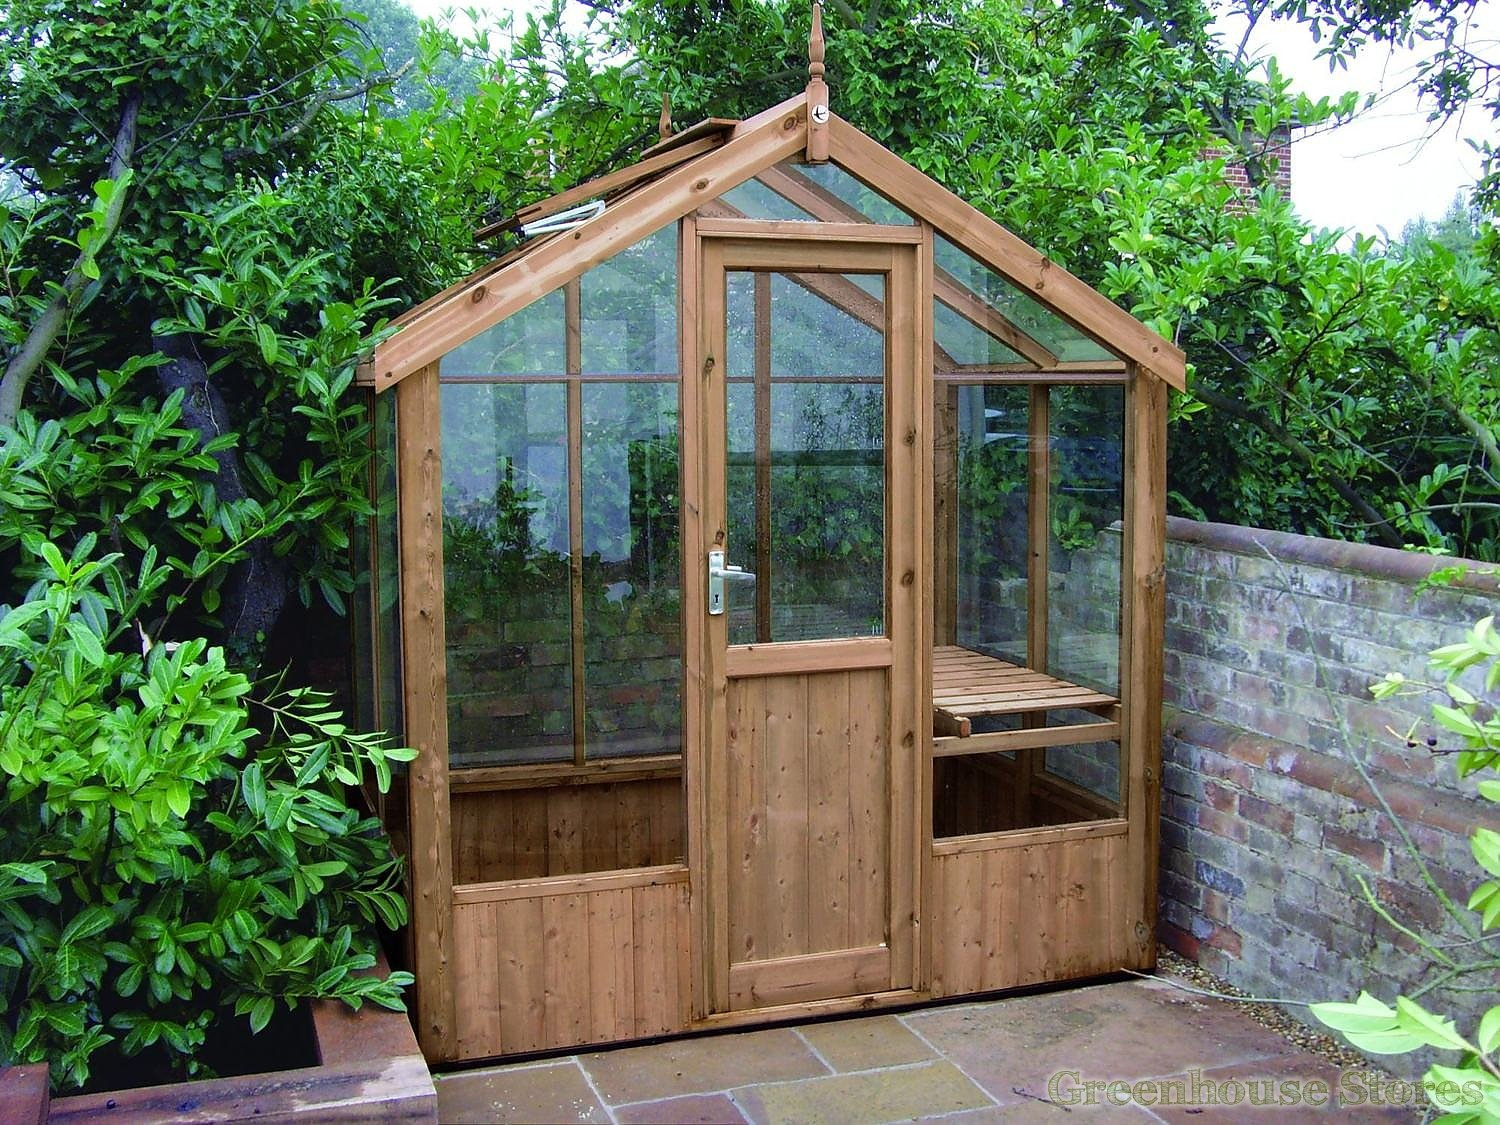 Swallow kingfisher 6x4 wooden greenhouse greenhouse stores - How to build a wooden greenhouse ...